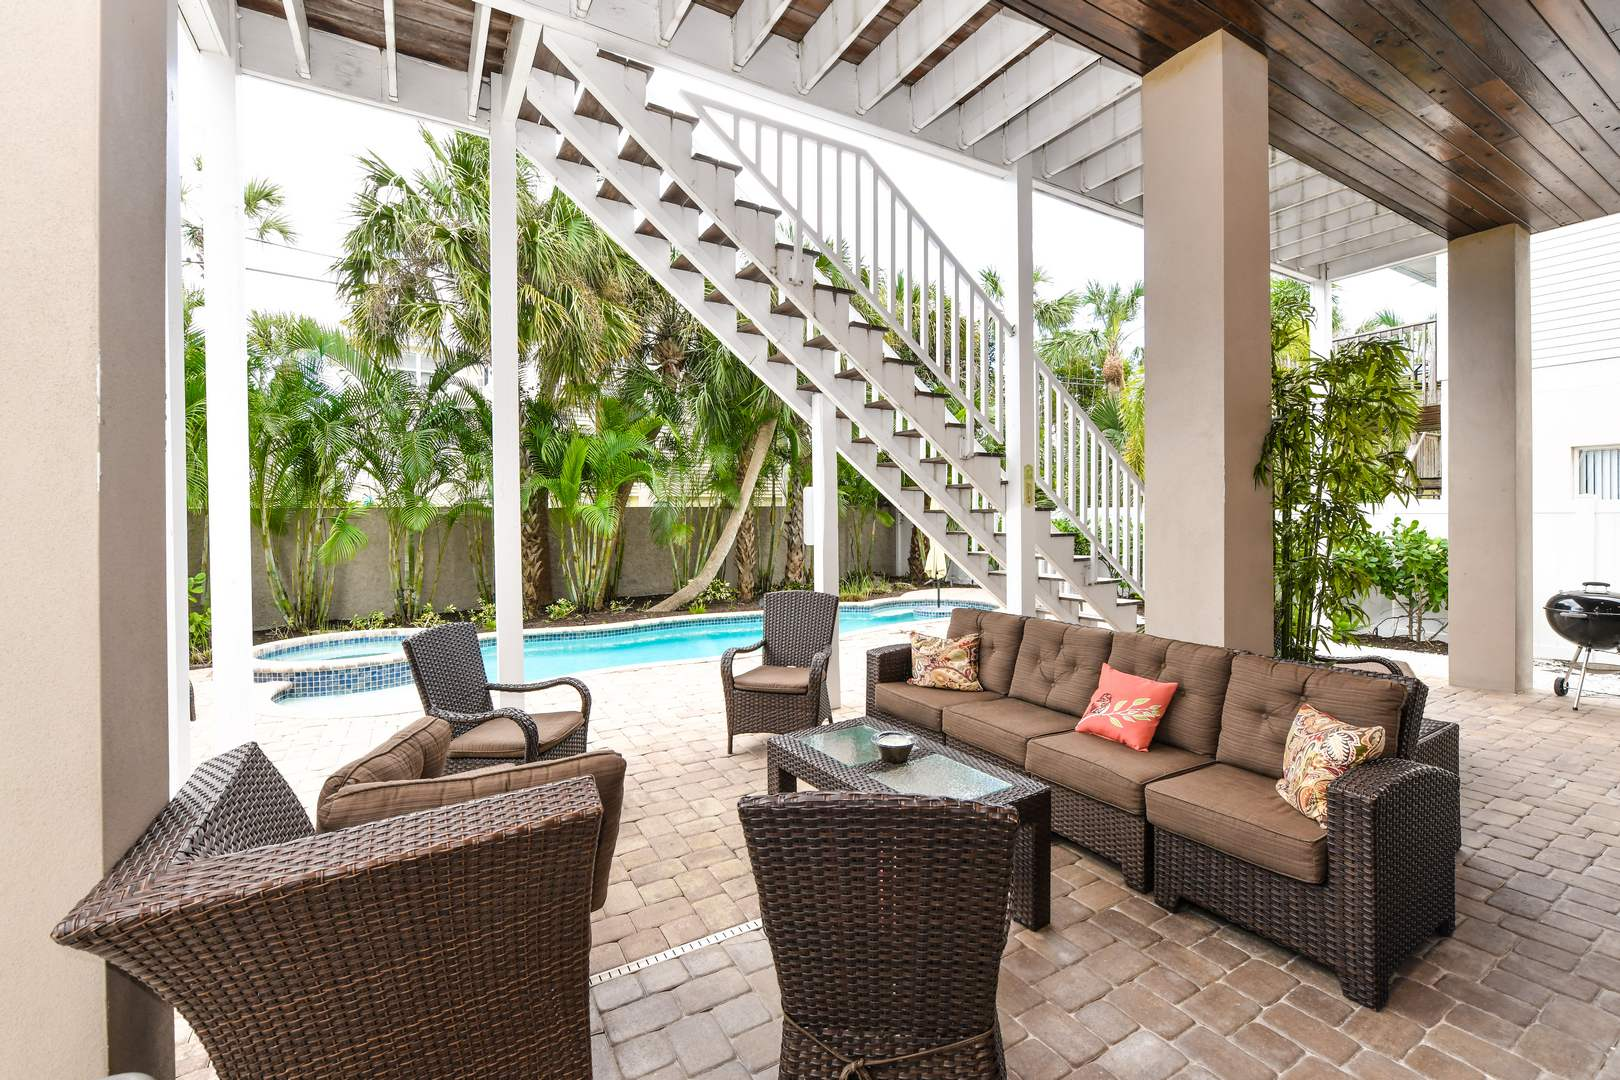 Outdoor Patio Furniture - Relax in Style by the Pool